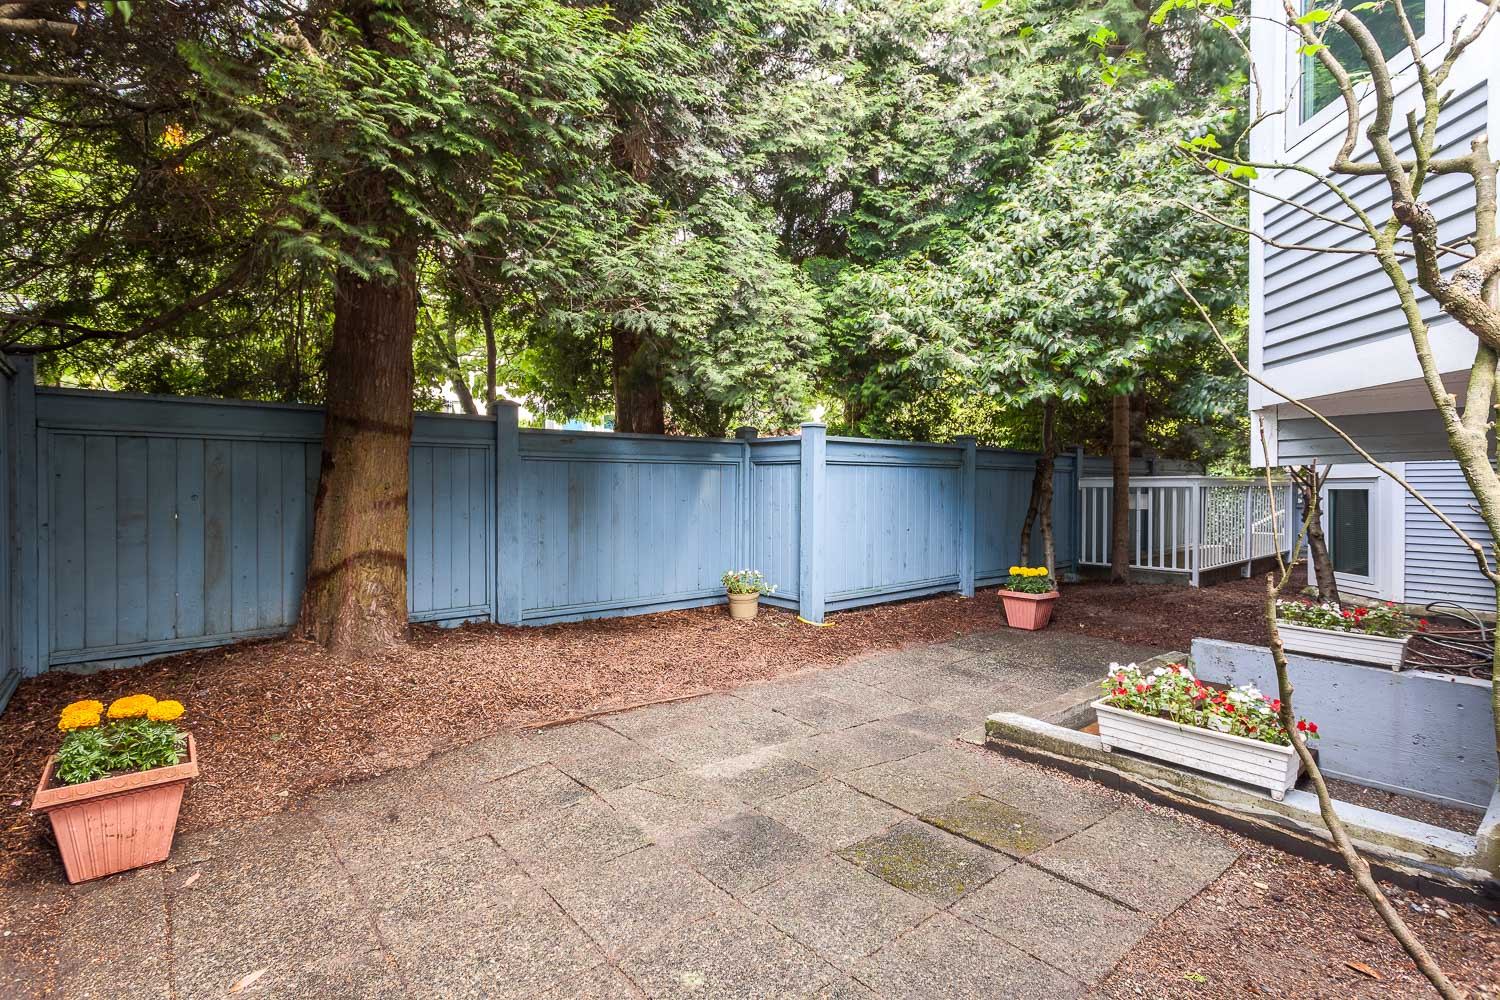 101 4696 W 10TH AVENUE - Point Grey Apartment/Condo for sale, 2 Bedrooms (R2203906) #10